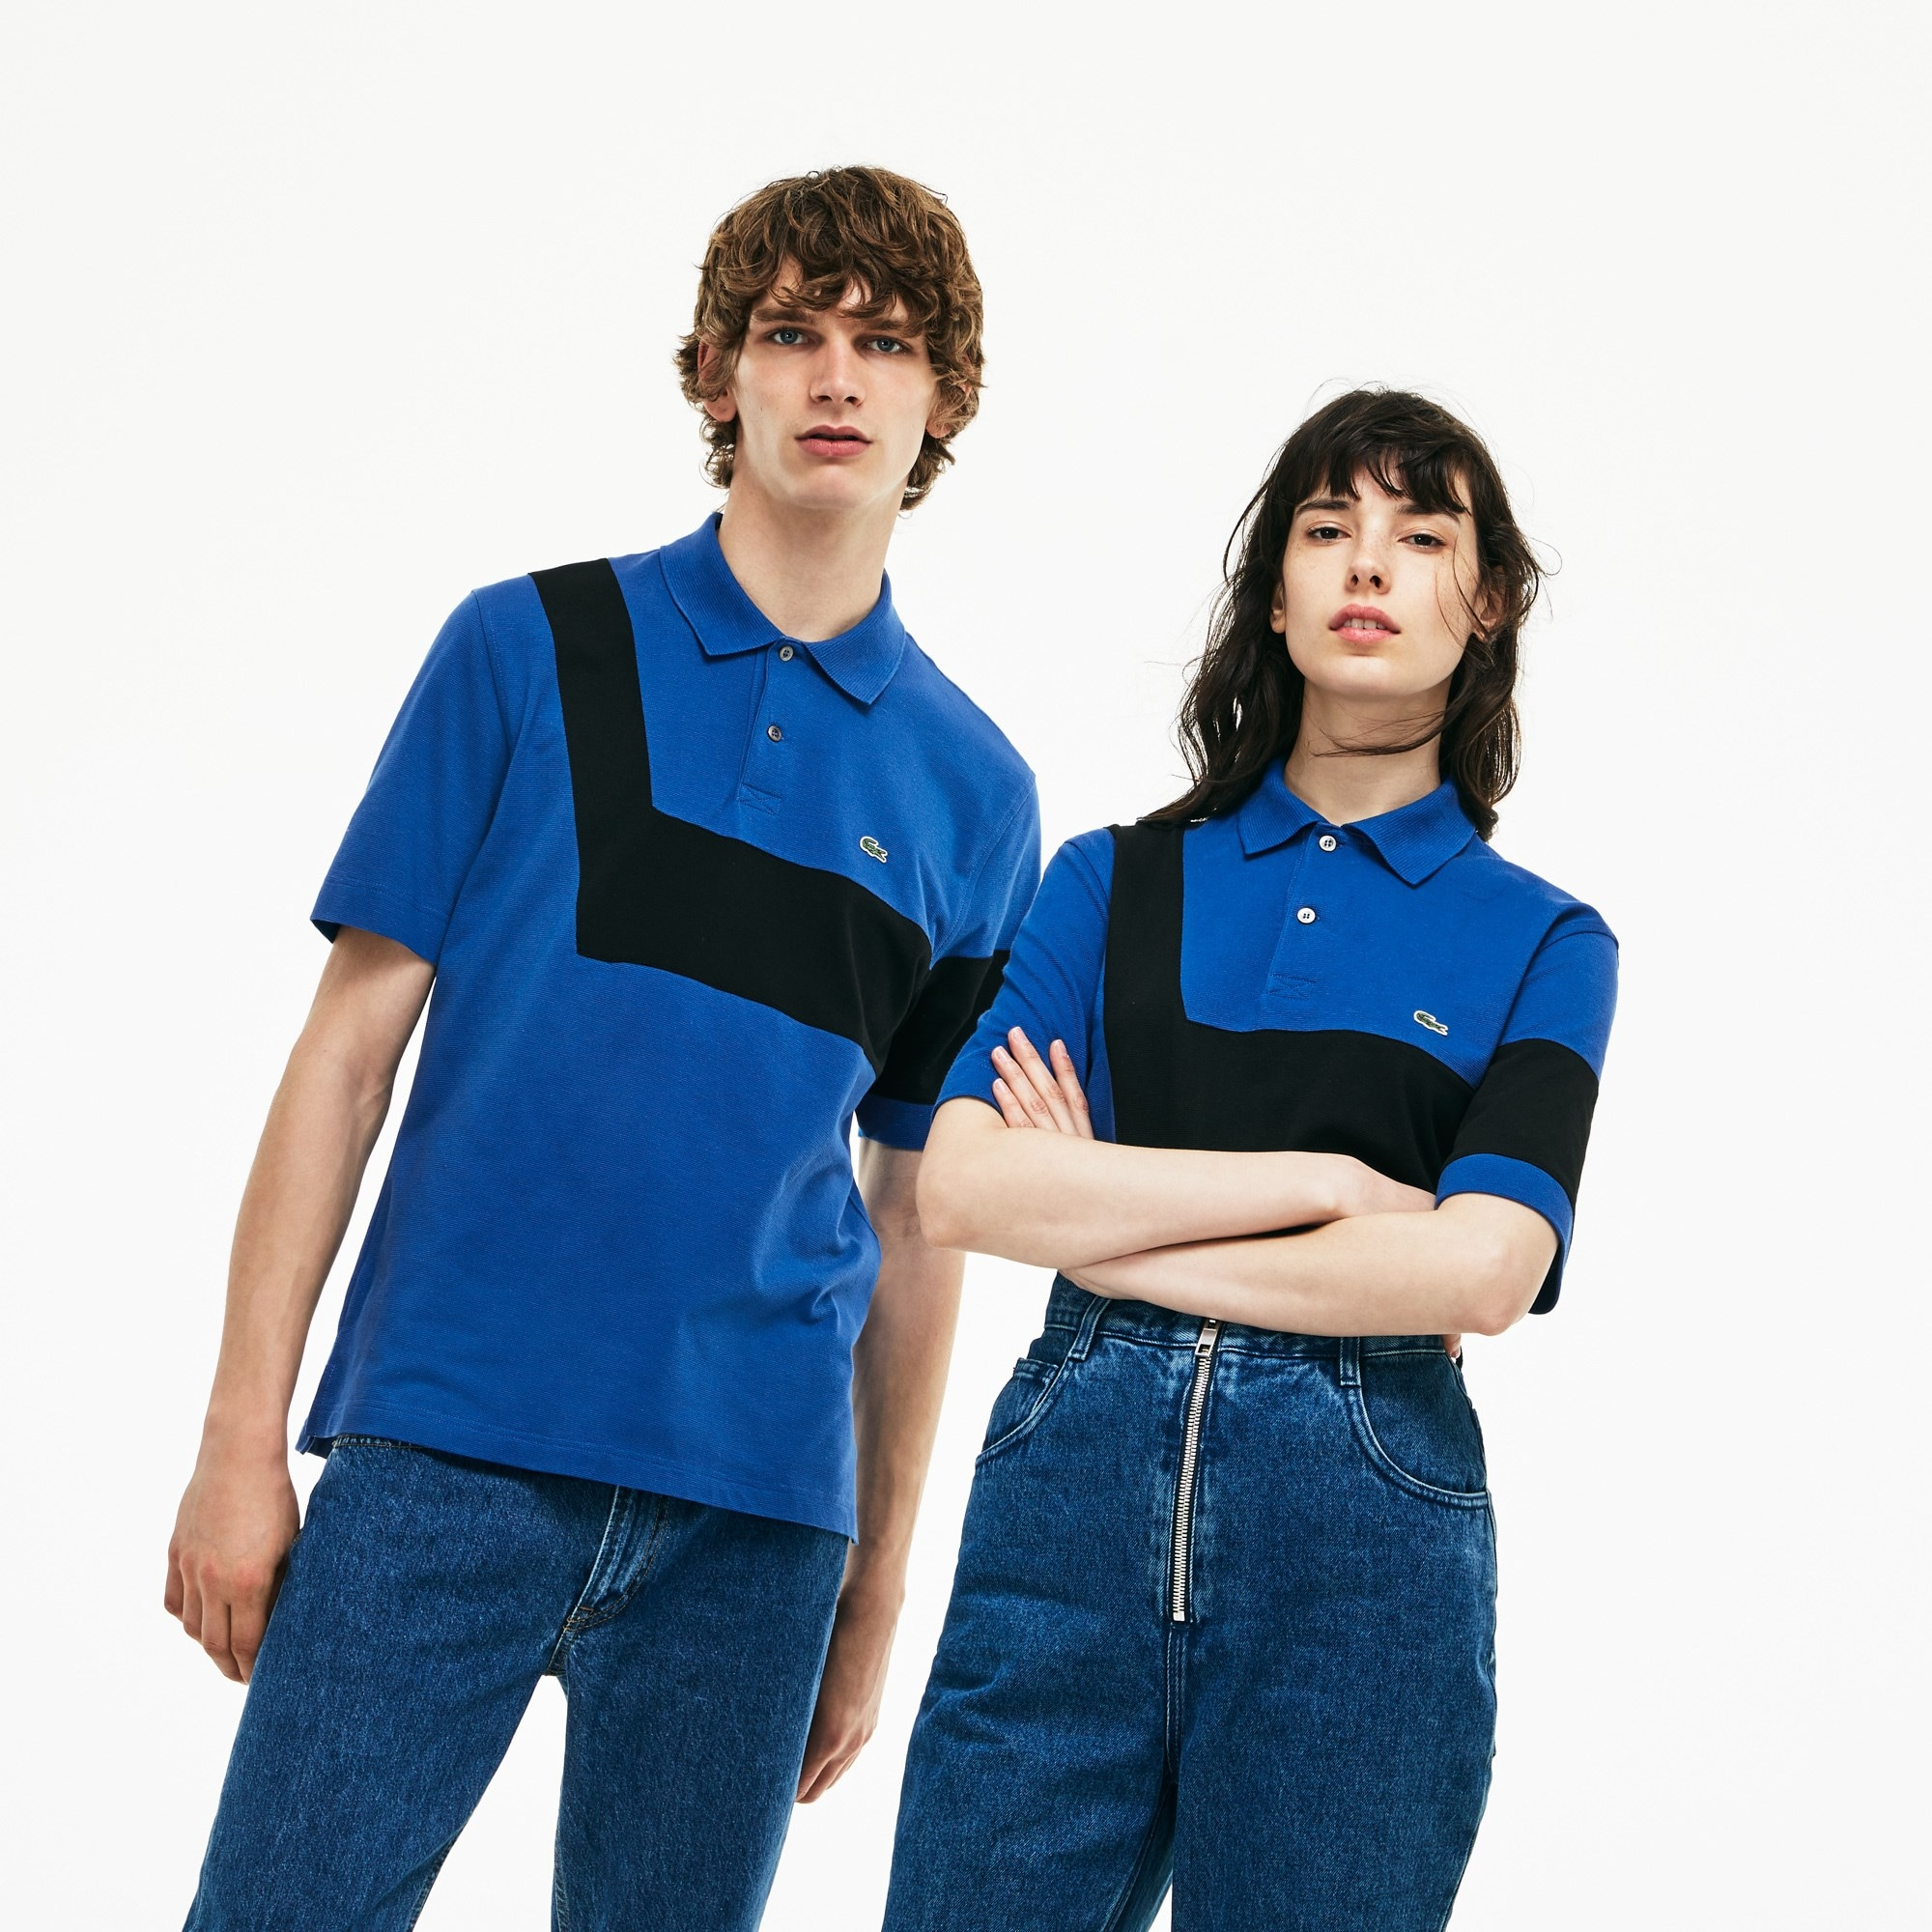 Unisex Lacoste 2000s Revival 85th Anniversary Limited Edition Light Cotton Polo Shirt